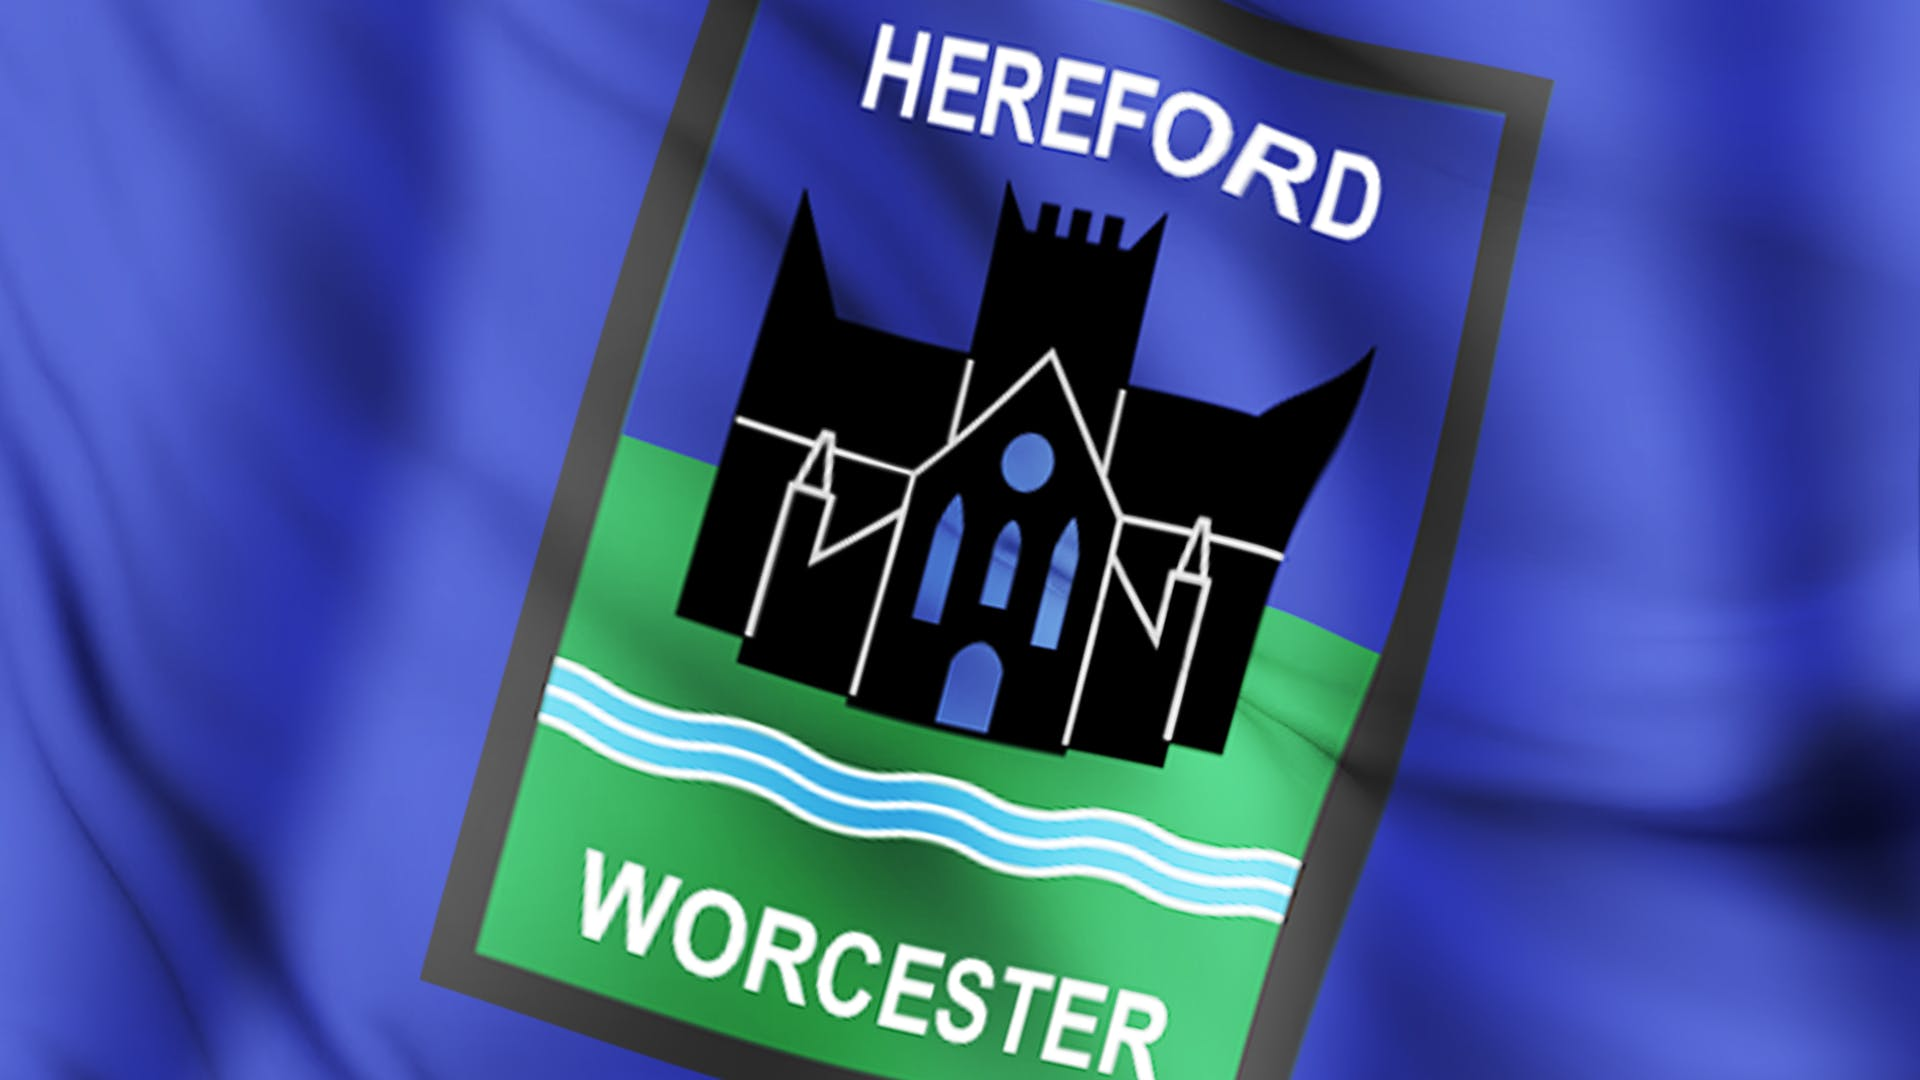 Hereford Worcester